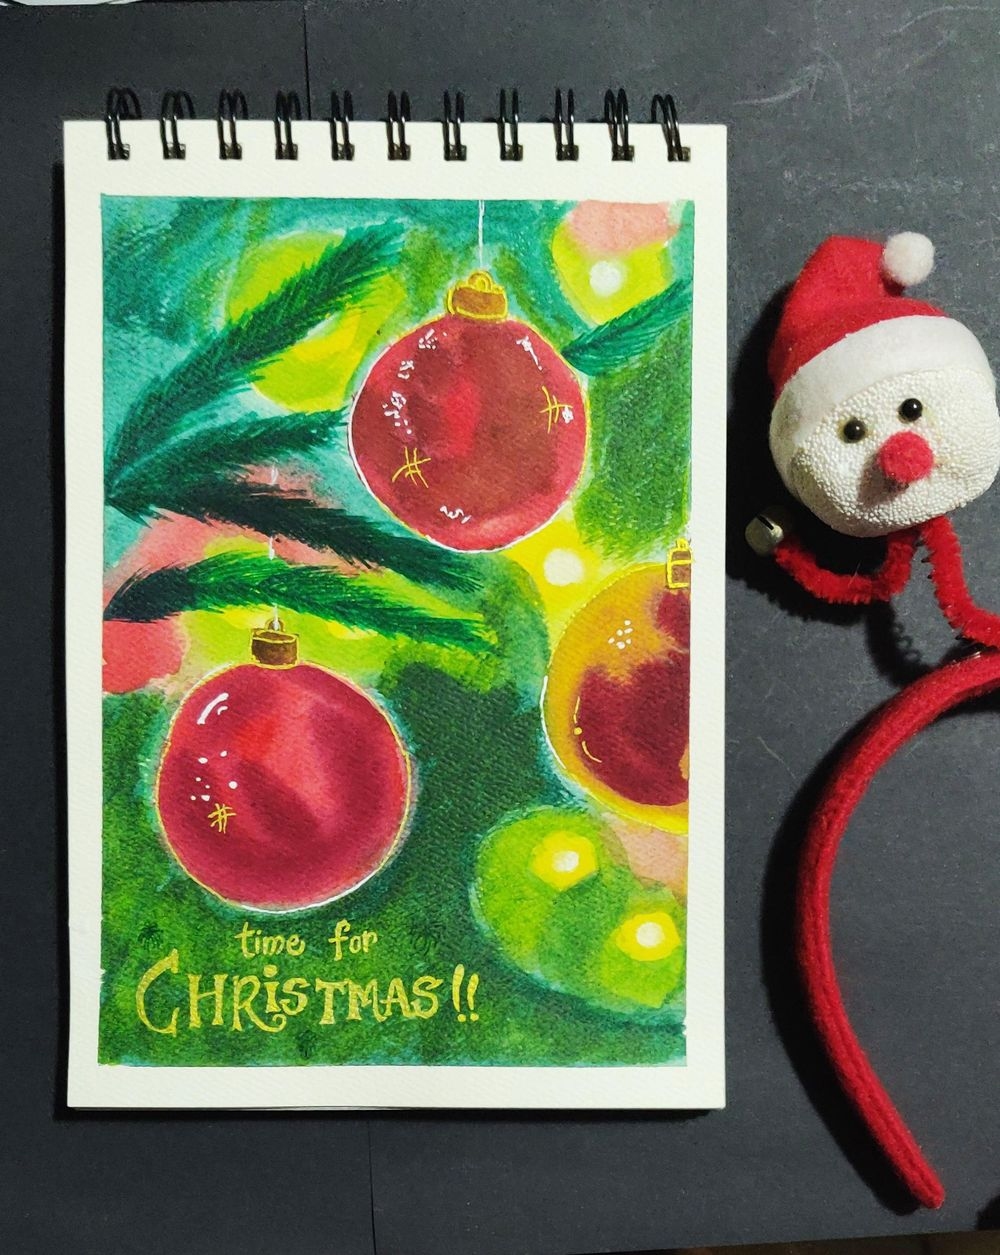 Countdown to Christmassssss!!!!! - image 2 - student project